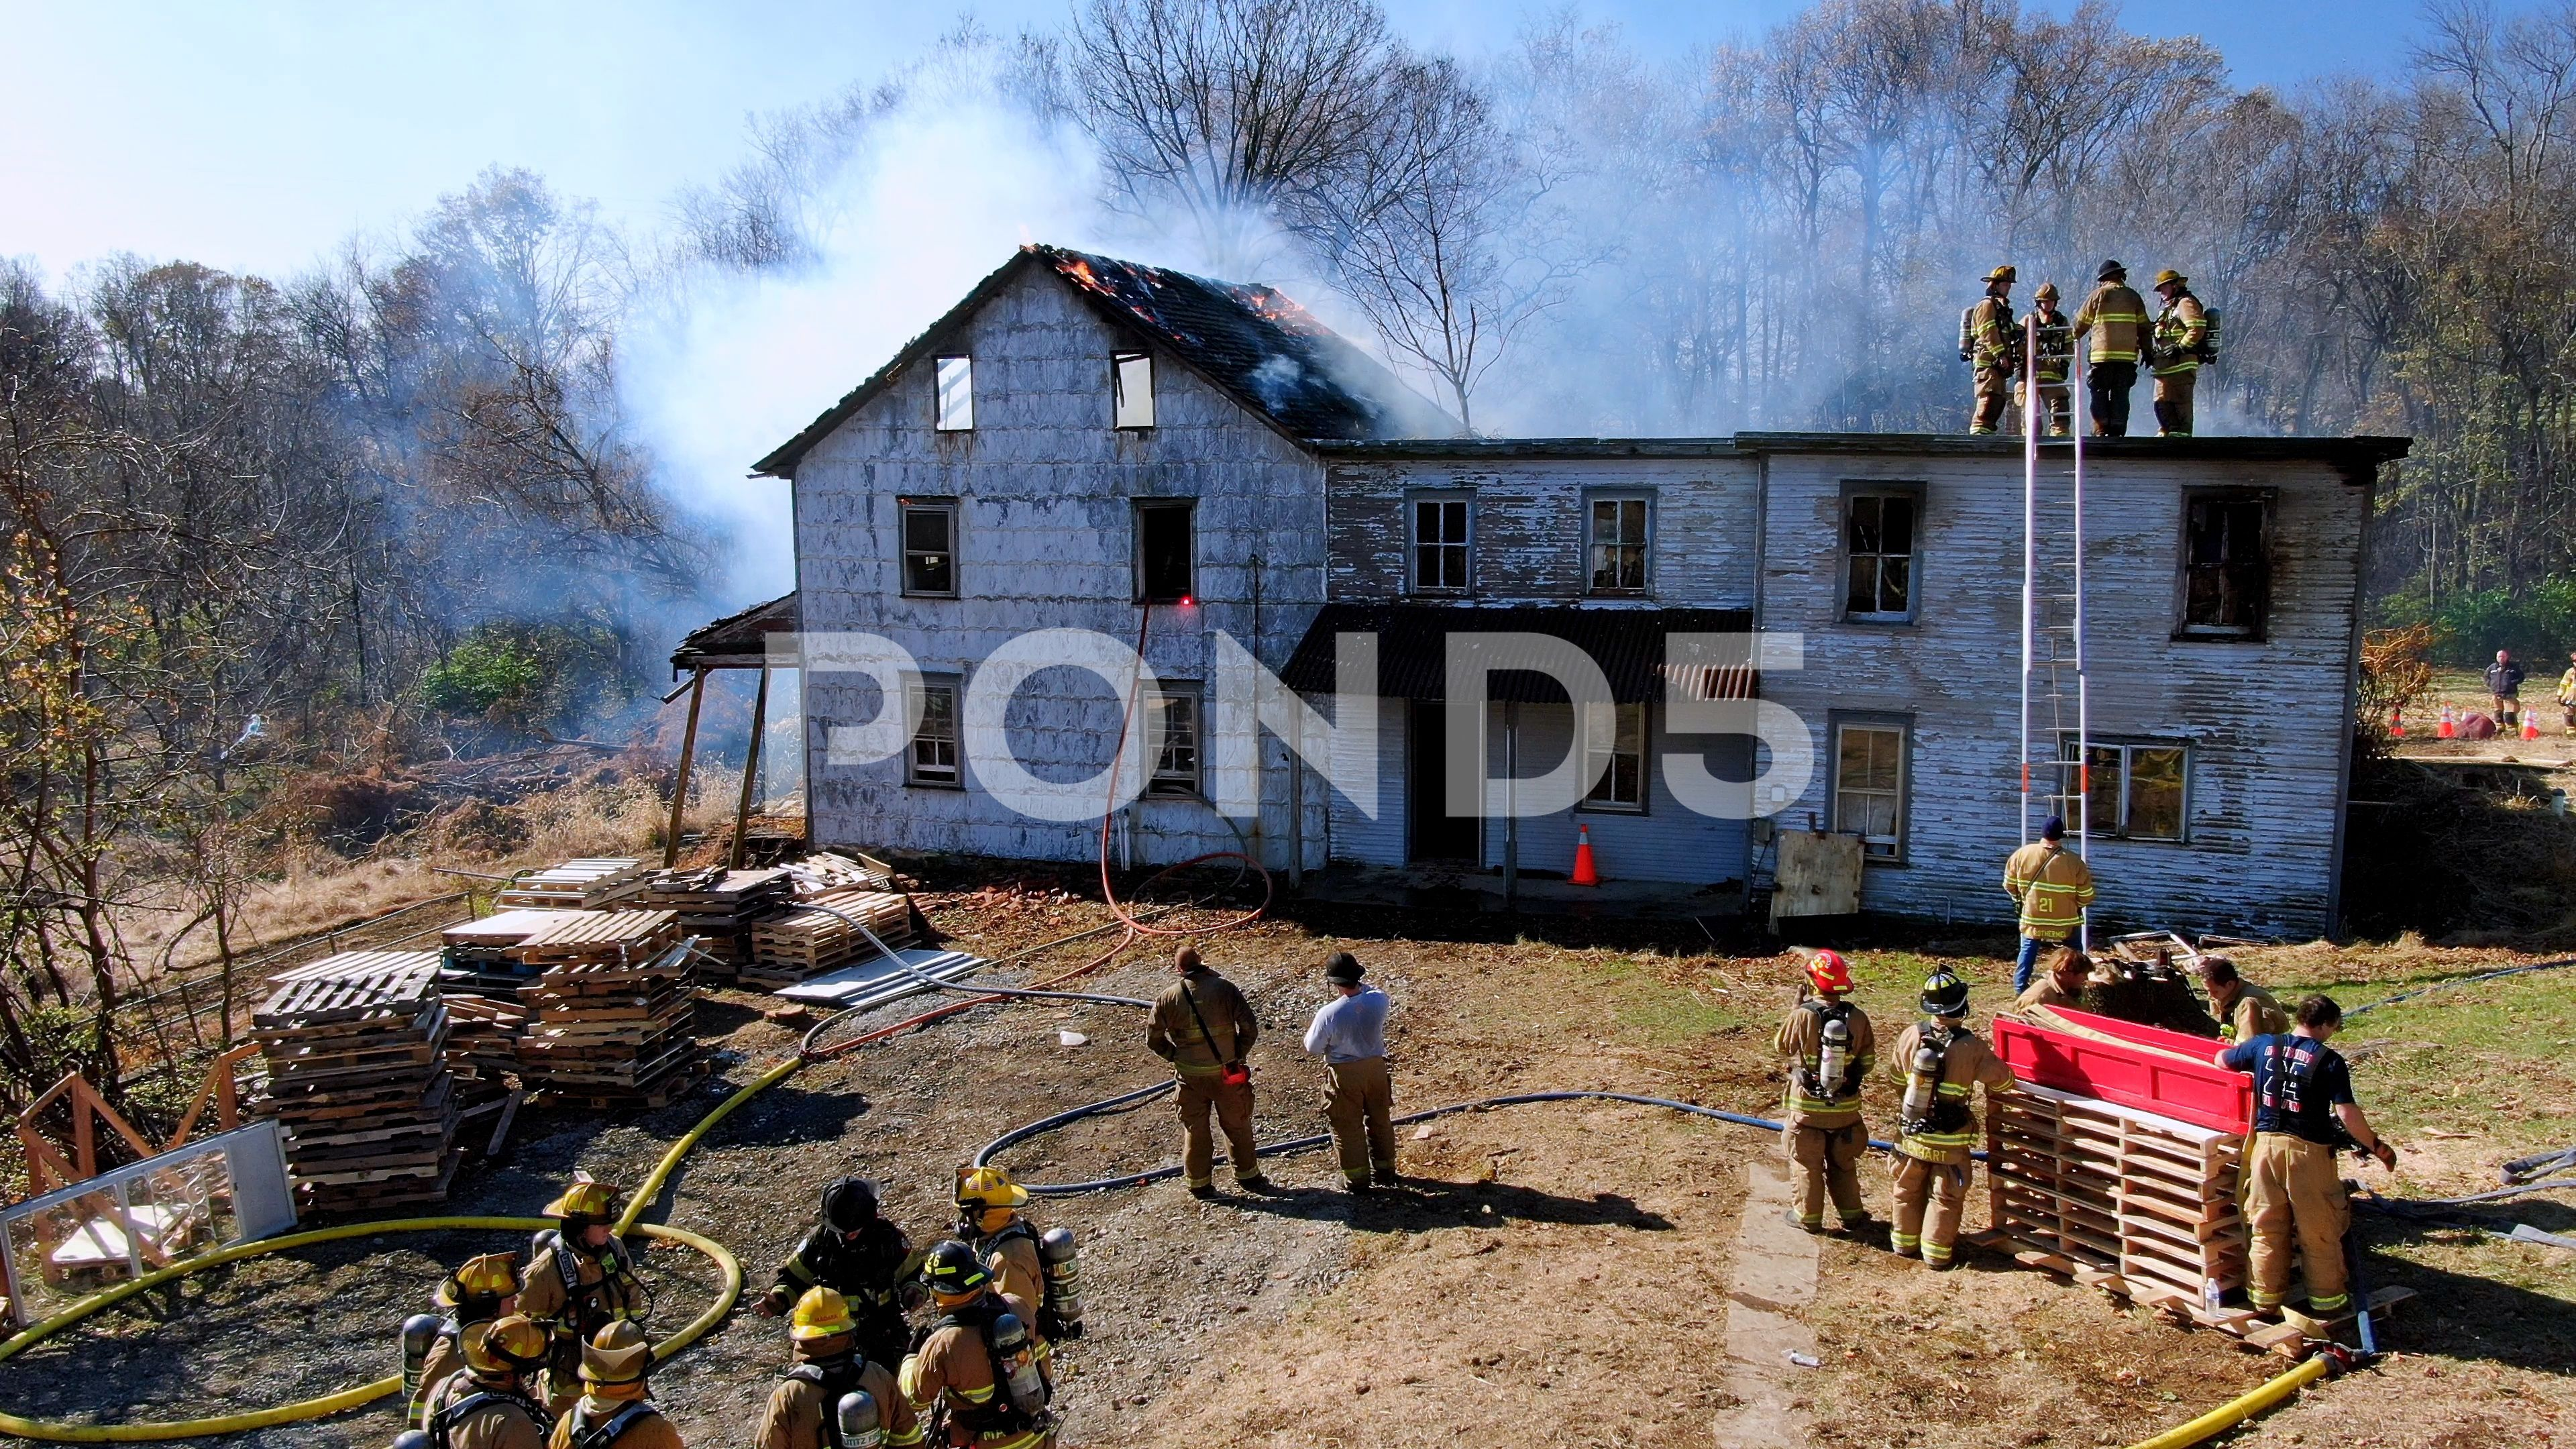 Firefighters respond to fire scene, wooden house in smoke and flames with Stock Footage #AD ,#scene#wooden#fire#Firefighters